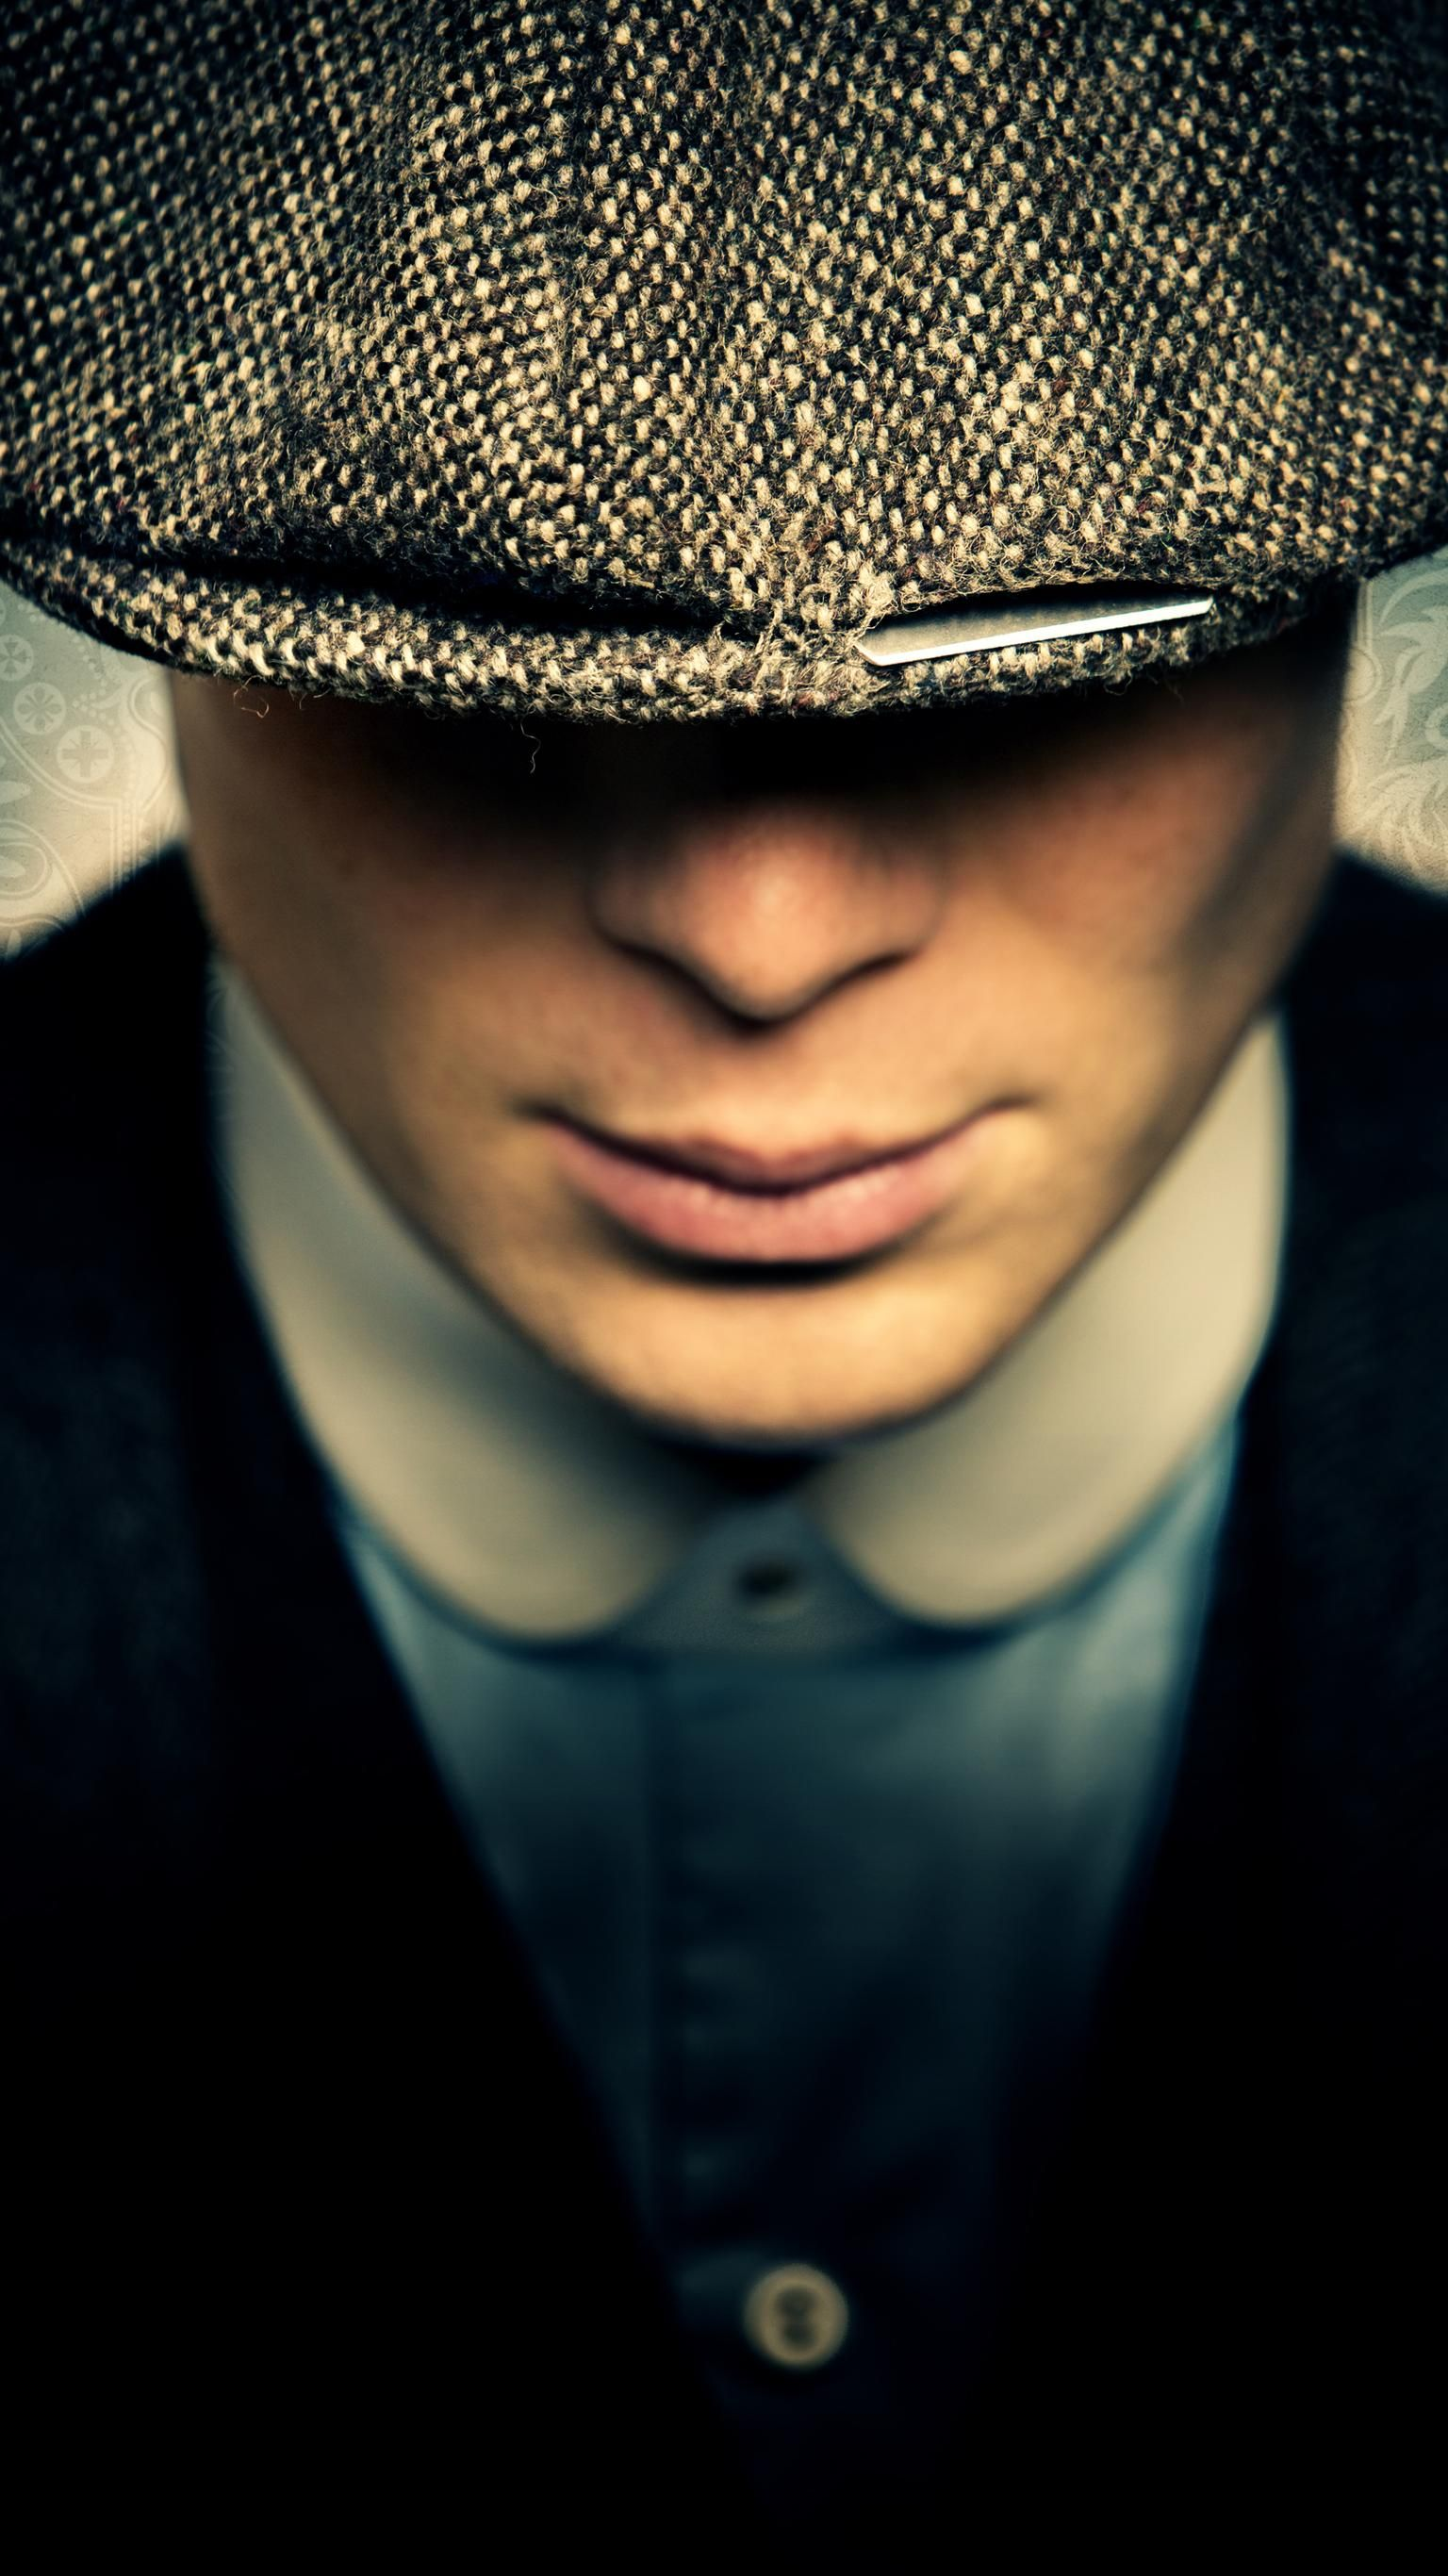 Peaky Blinders Phone Wallpaper Cillian Murphy Fotografia De